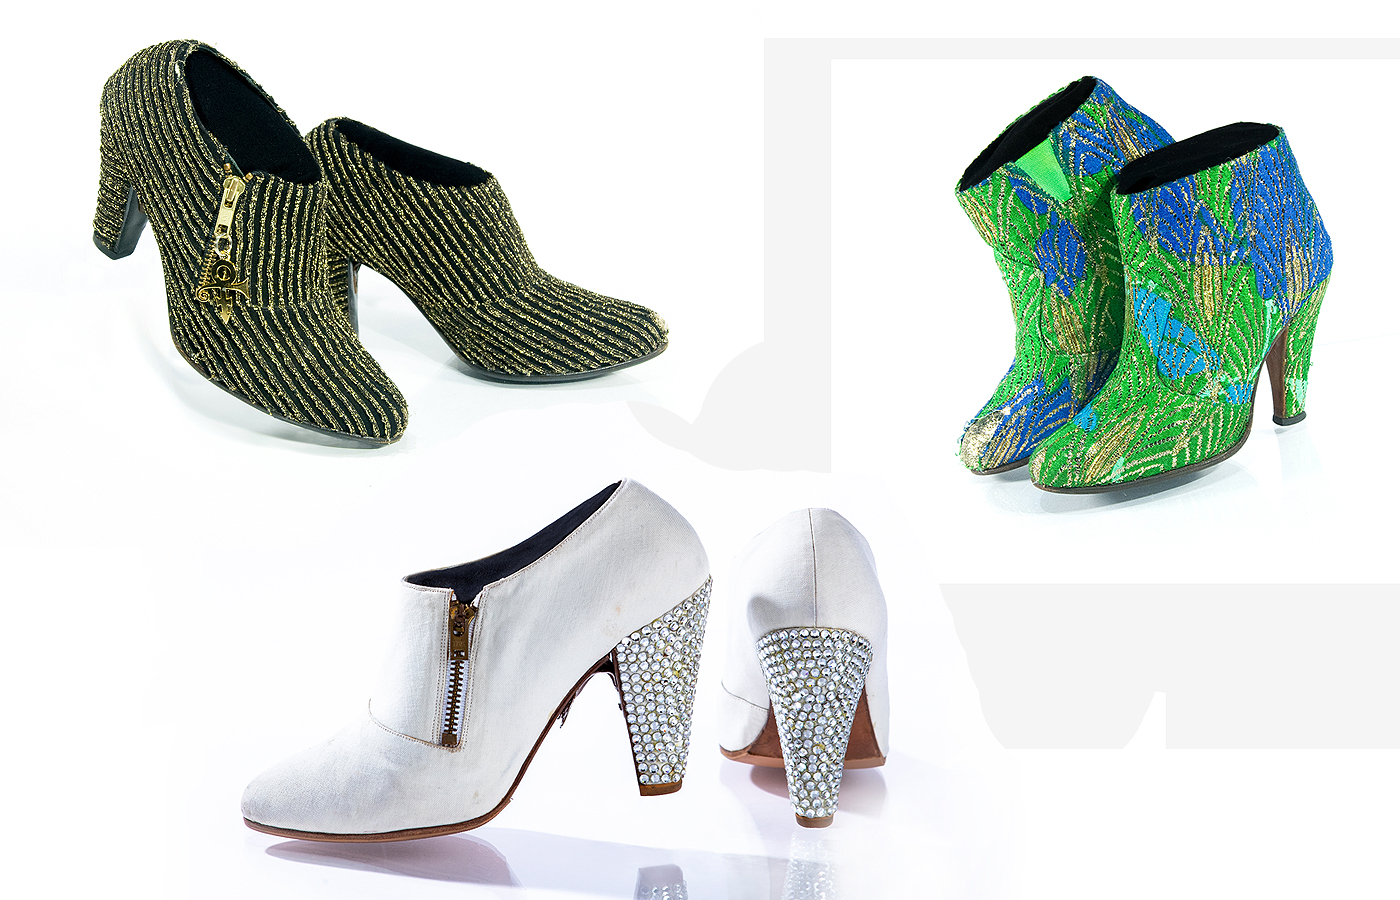 The Beautiful Collection: Prince's Custom Shoes